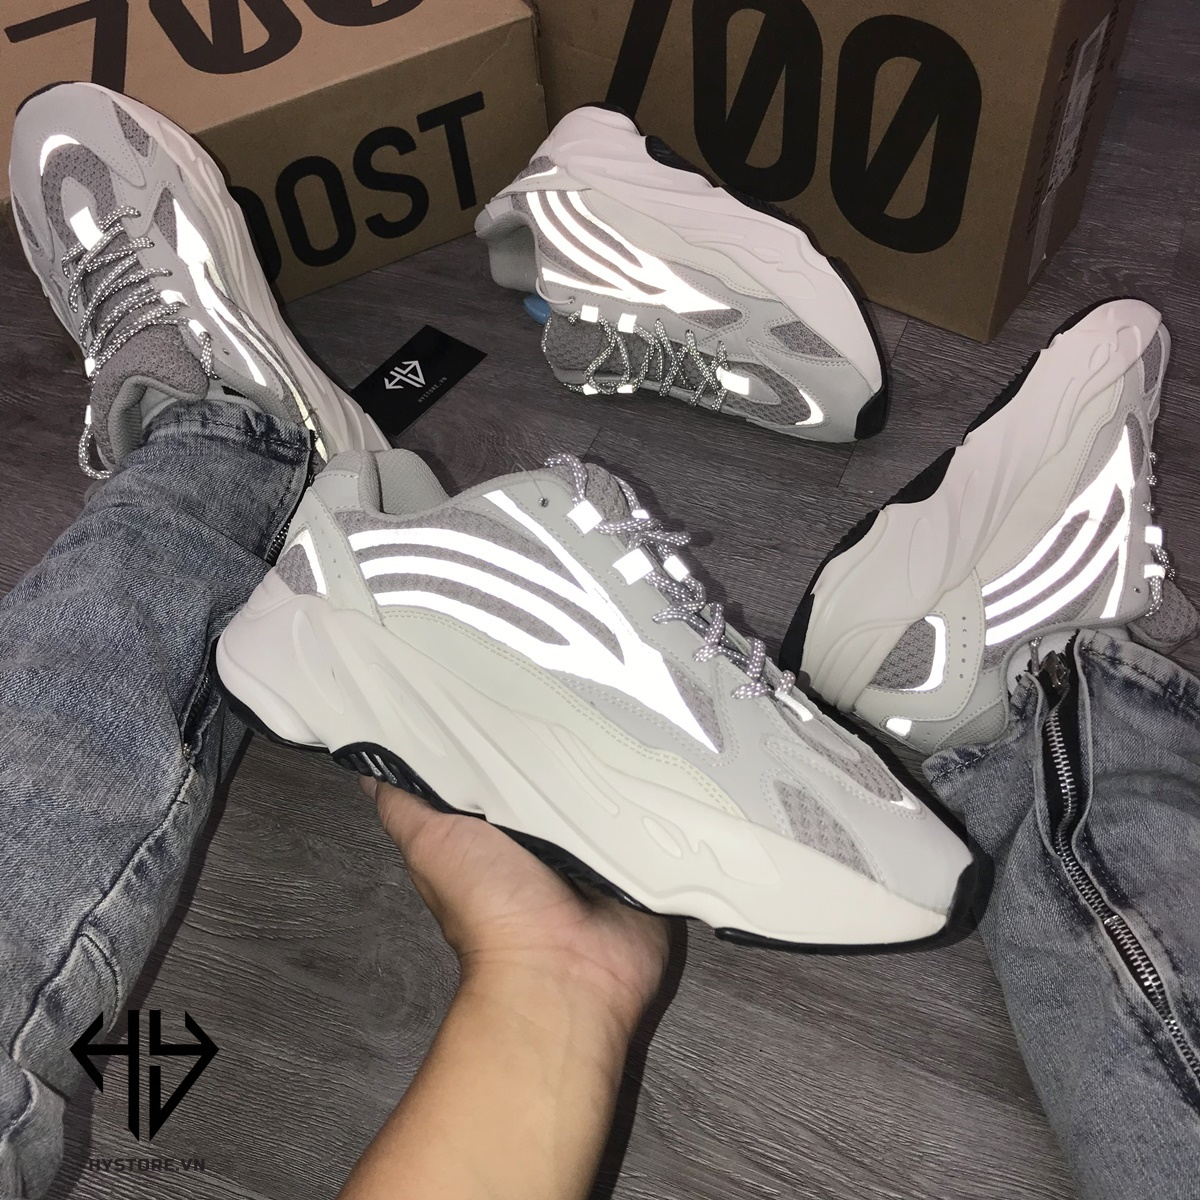 Giày Yeezy 700vs Static Replica 1:1